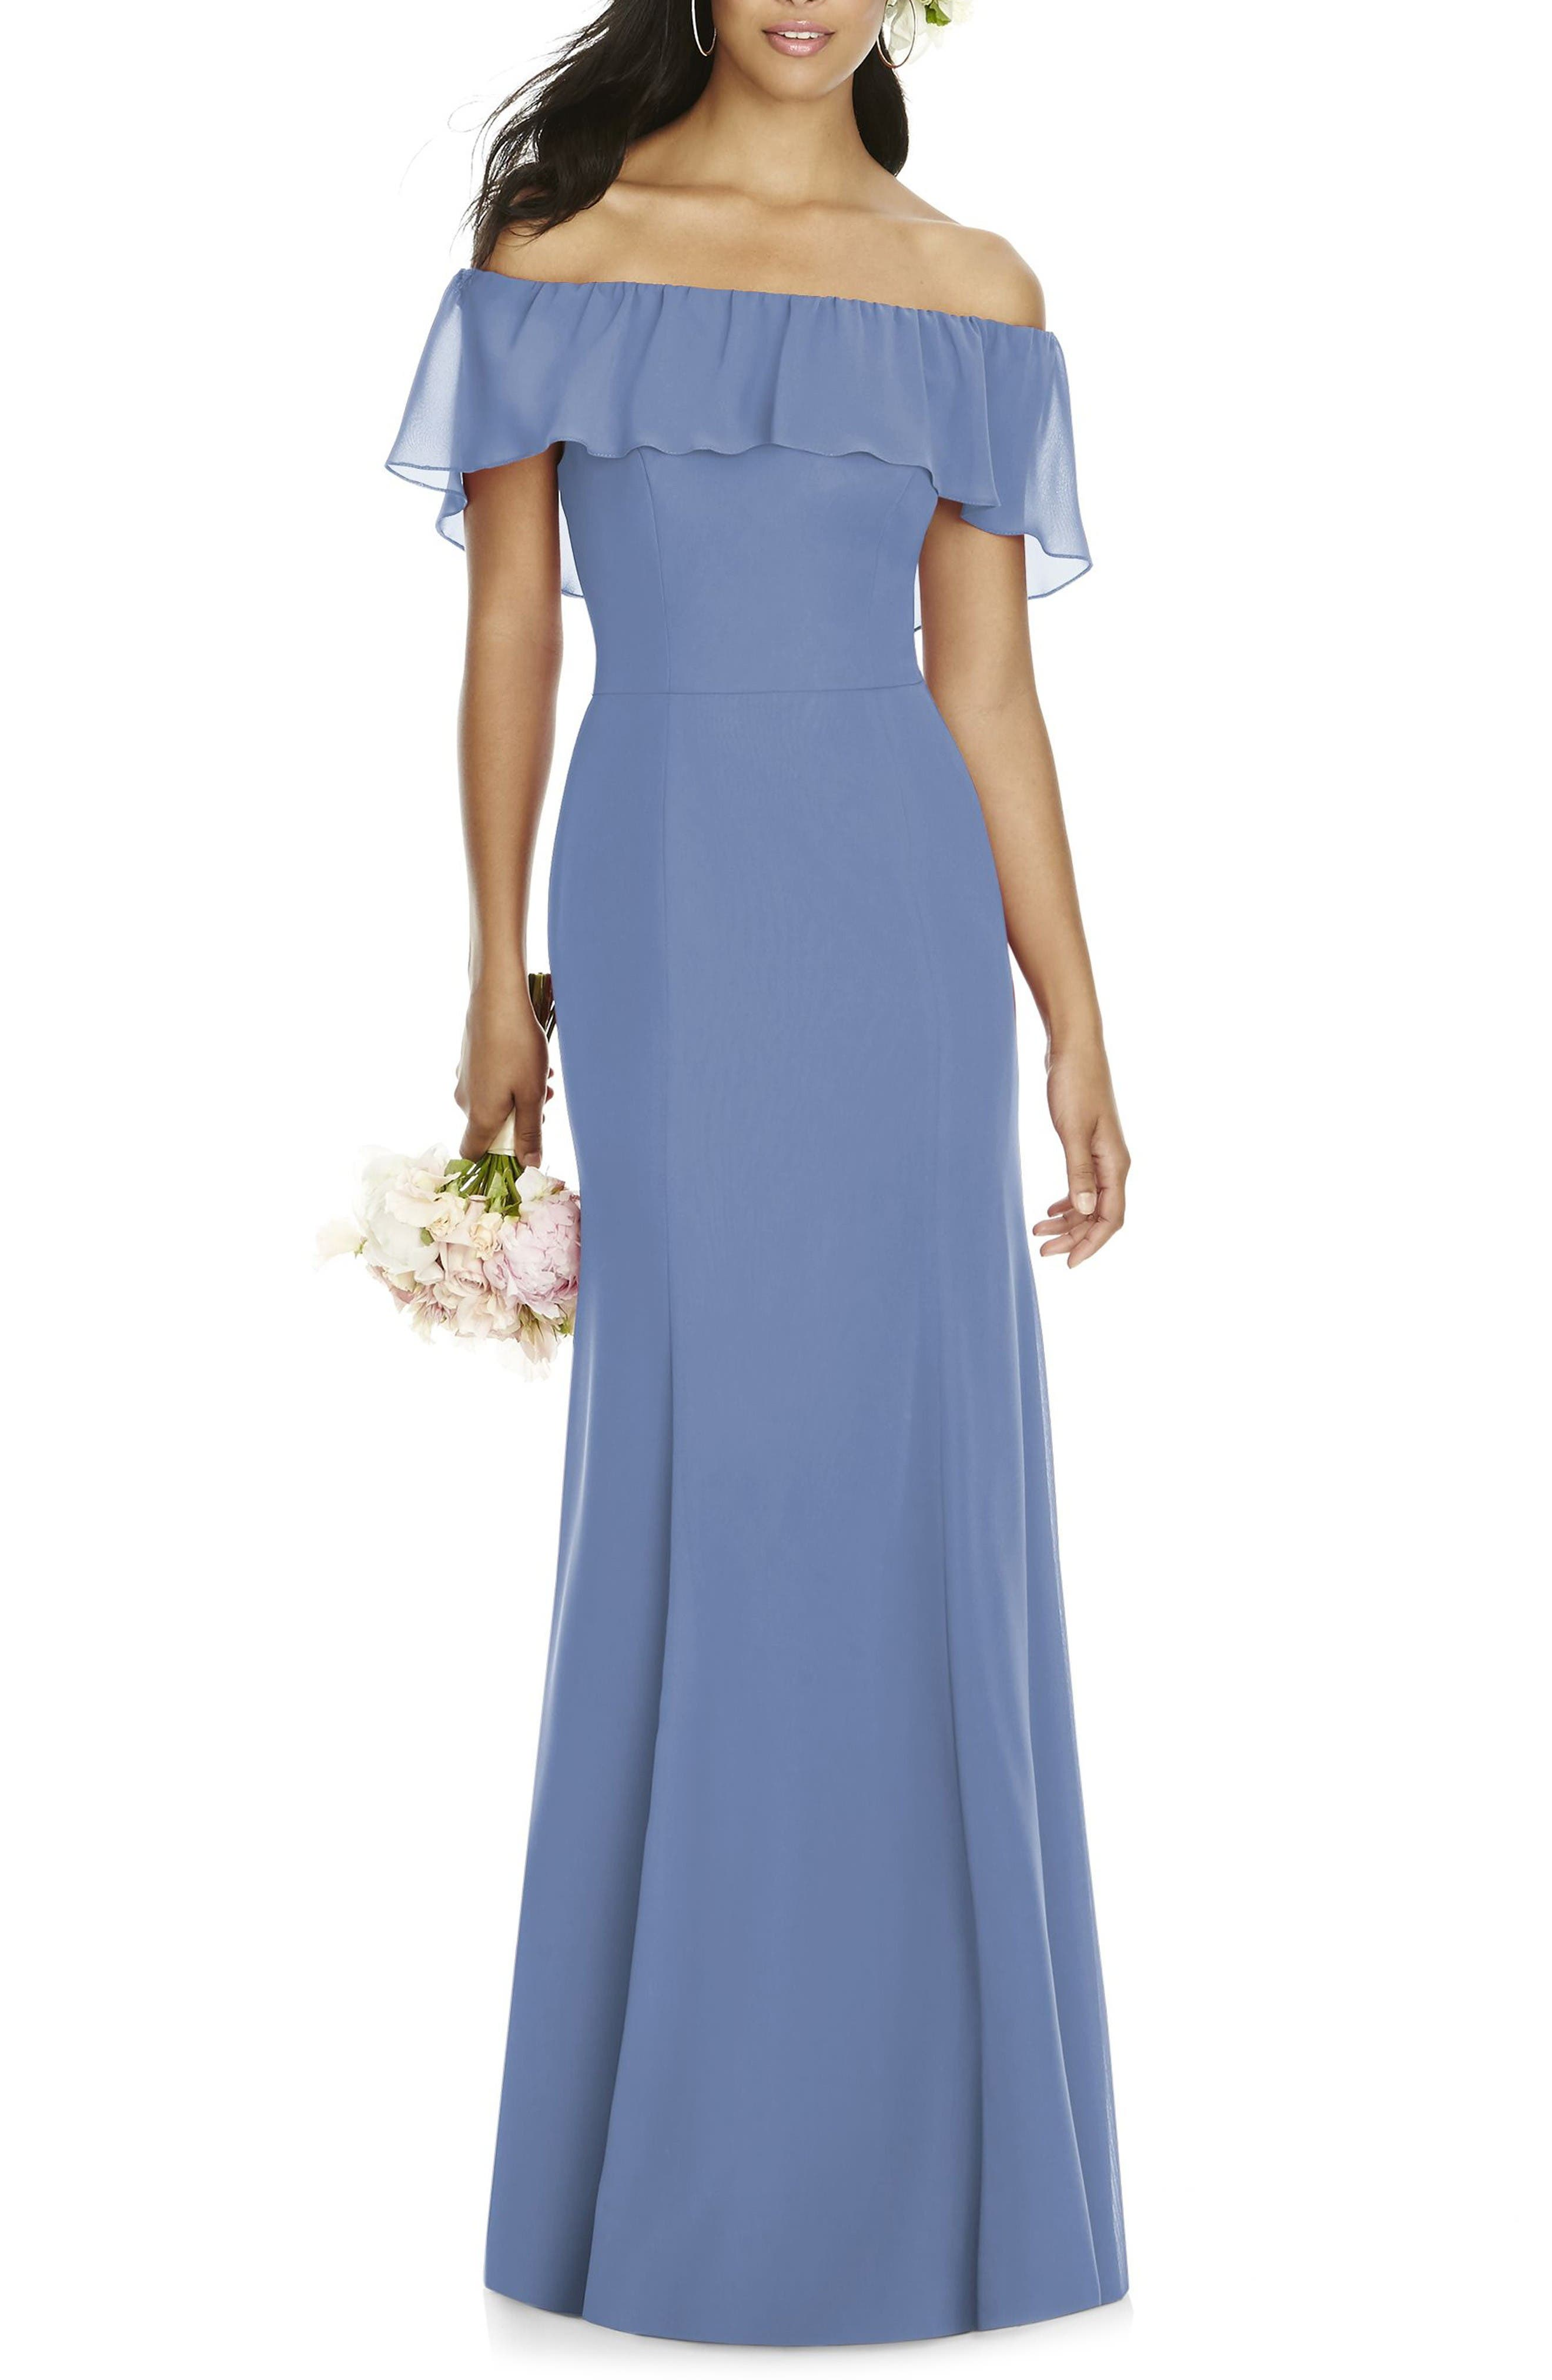 Main Image - Social Bridesmaids Ruffle Off the Shoulder Chiffon Gown